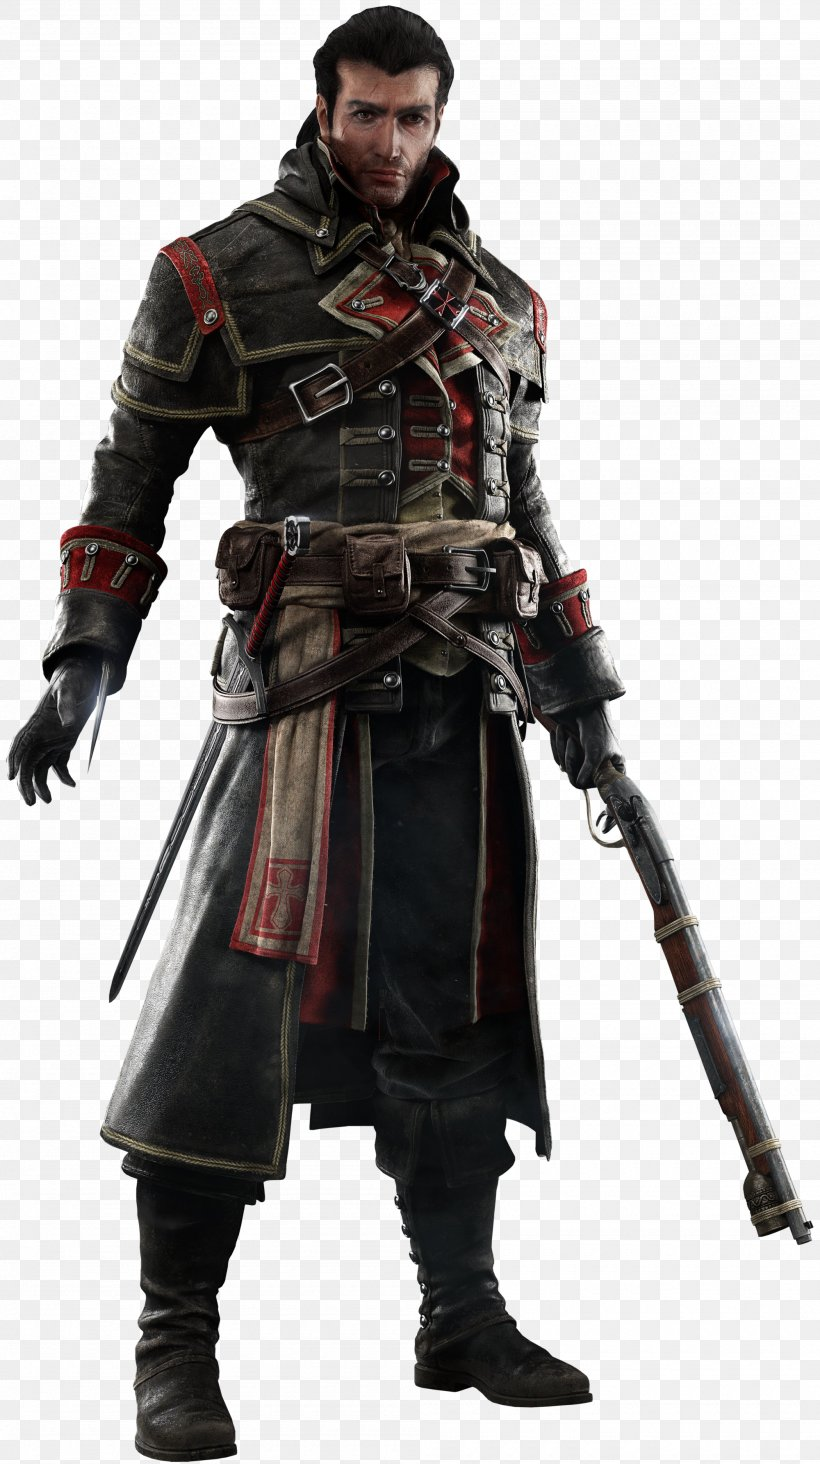 Assassin's Creed Rogue Assassin's Creed Unity Assassin's Creed III Assassin's Creed IV: Black Flag Assassin's Creed: Brotherhood, PNG, 2000x3572px, Assassin S Creed Unity, Action Figure, Armour, Assassin S Creed, Assassin S Creed Ii Download Free